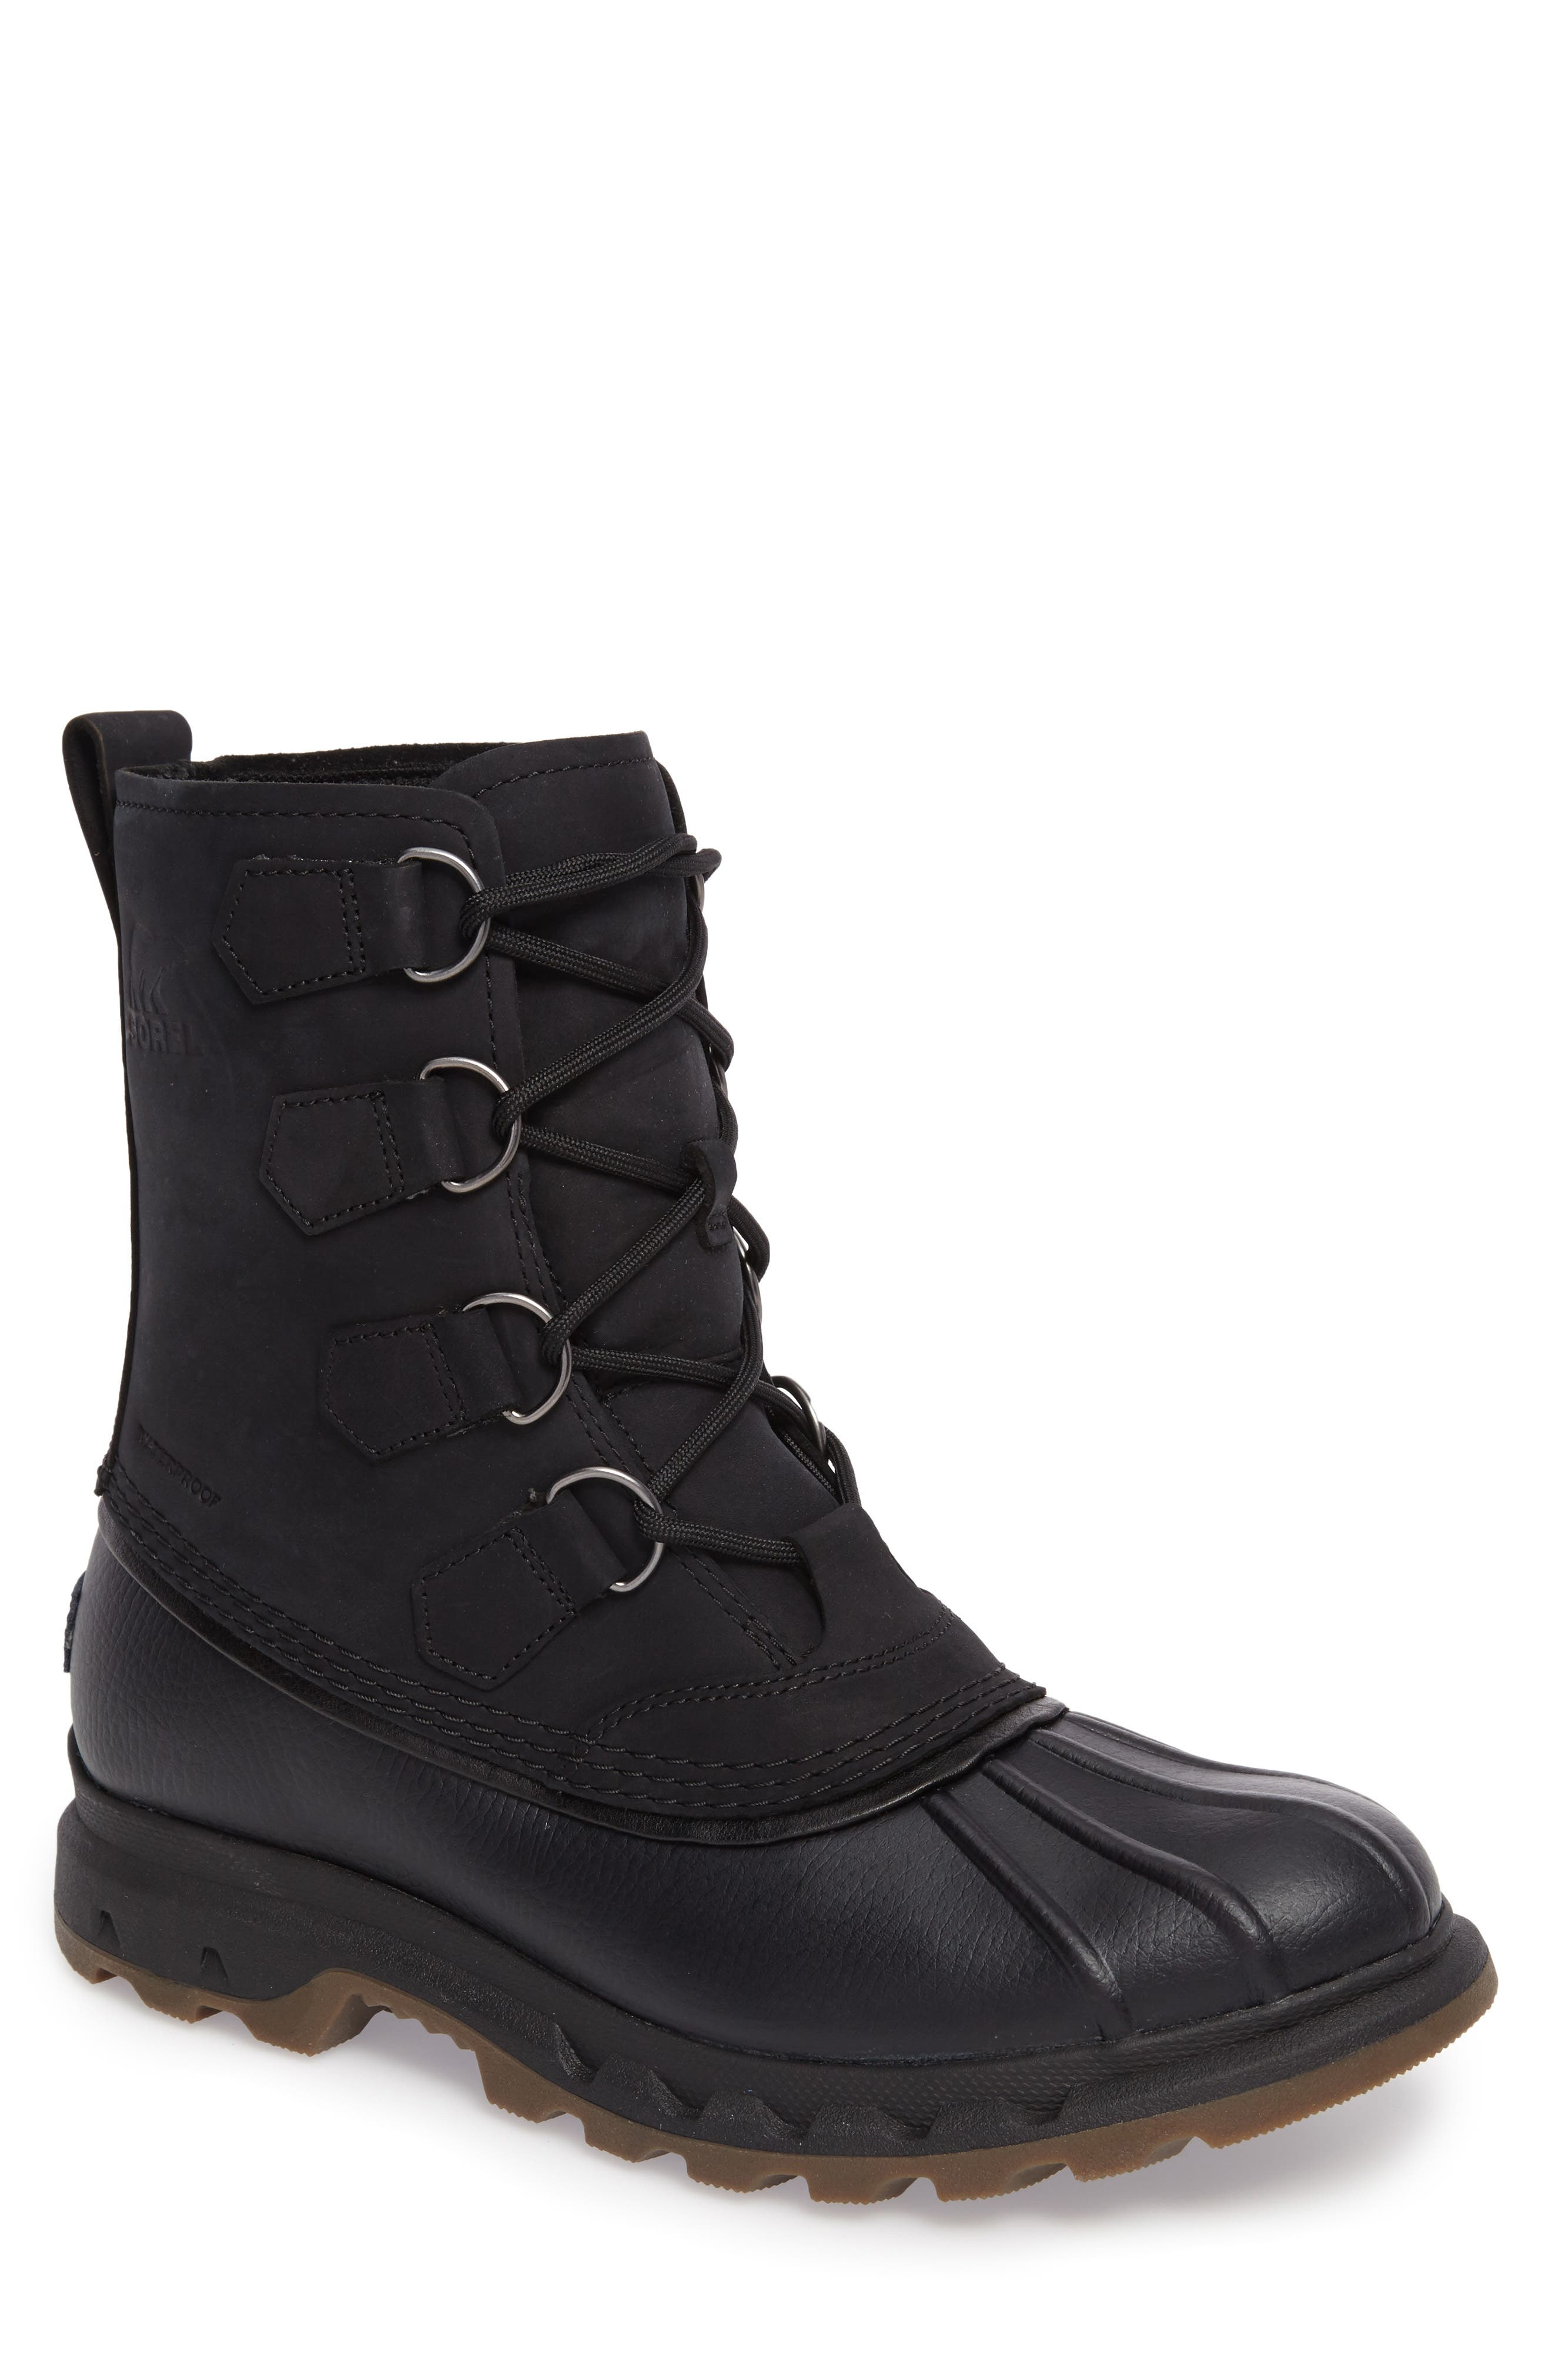 rainy shoes for mens shoes for yourstyles